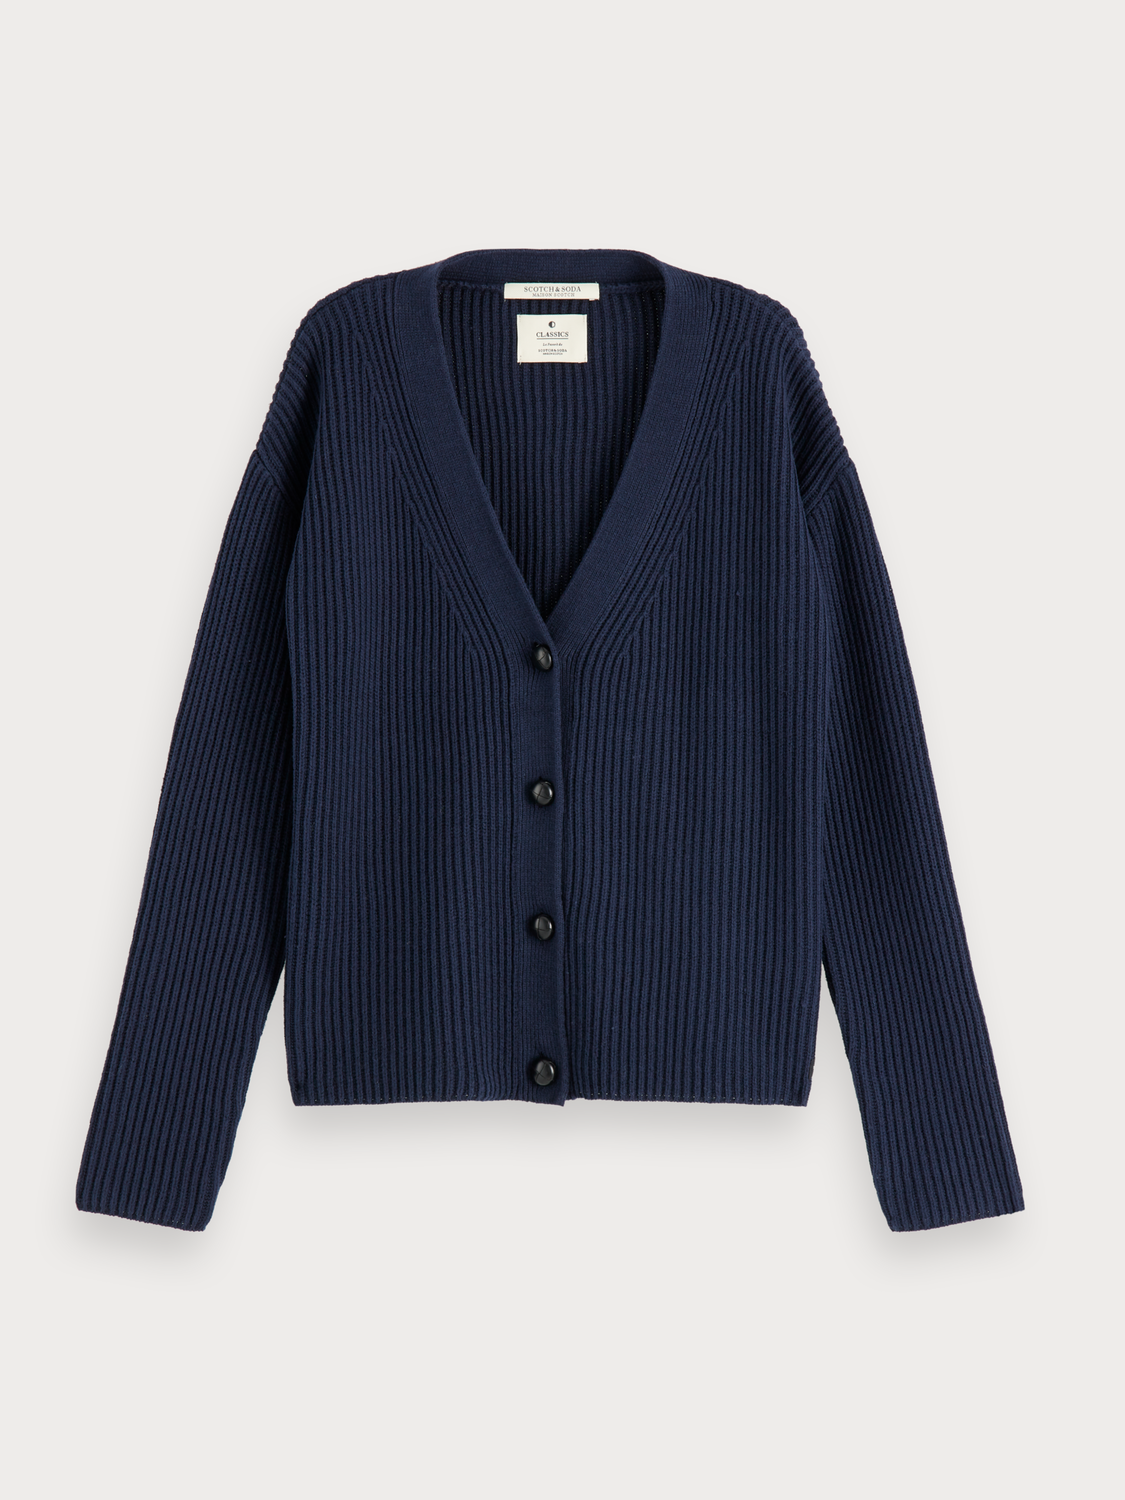 Damen Grobstrick-Cardigan